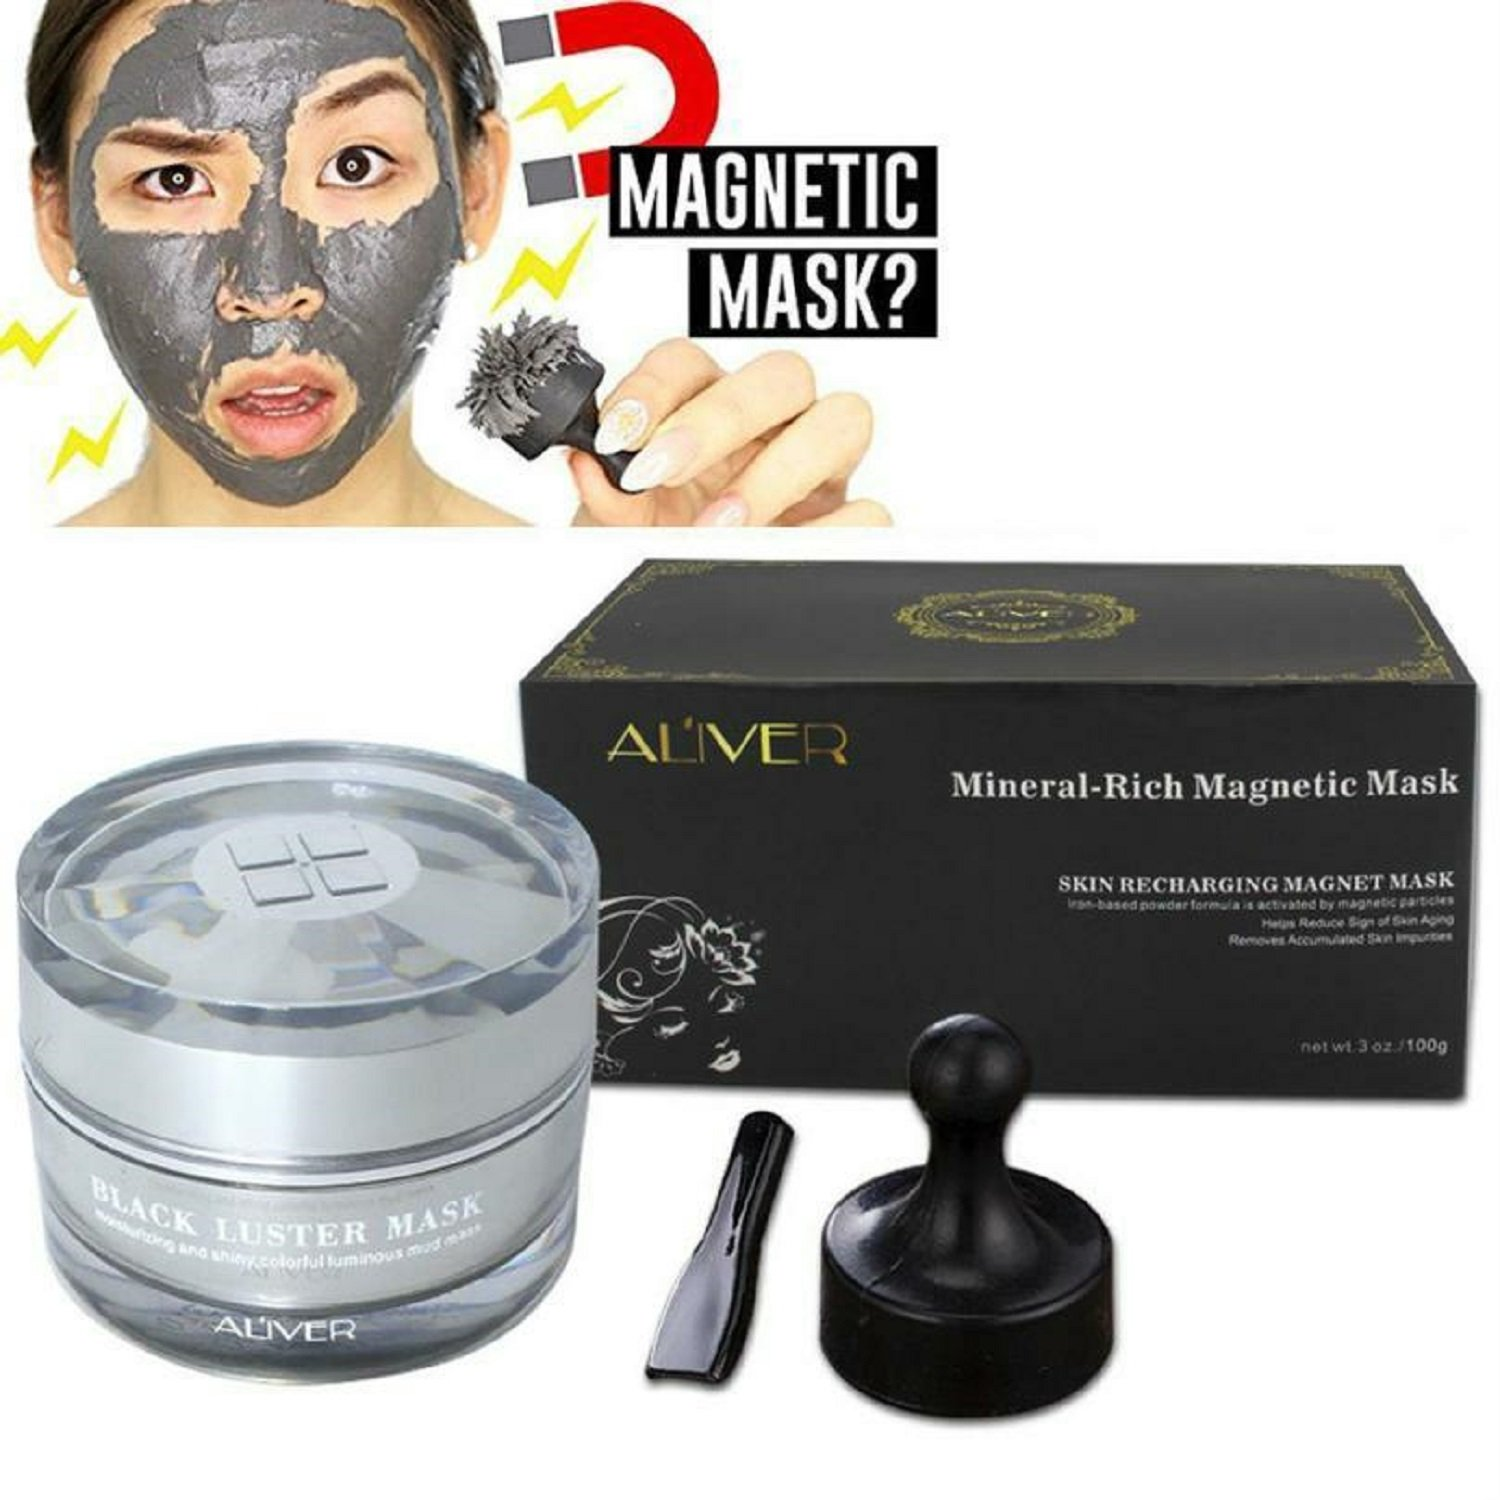 Image result for magnetic mask